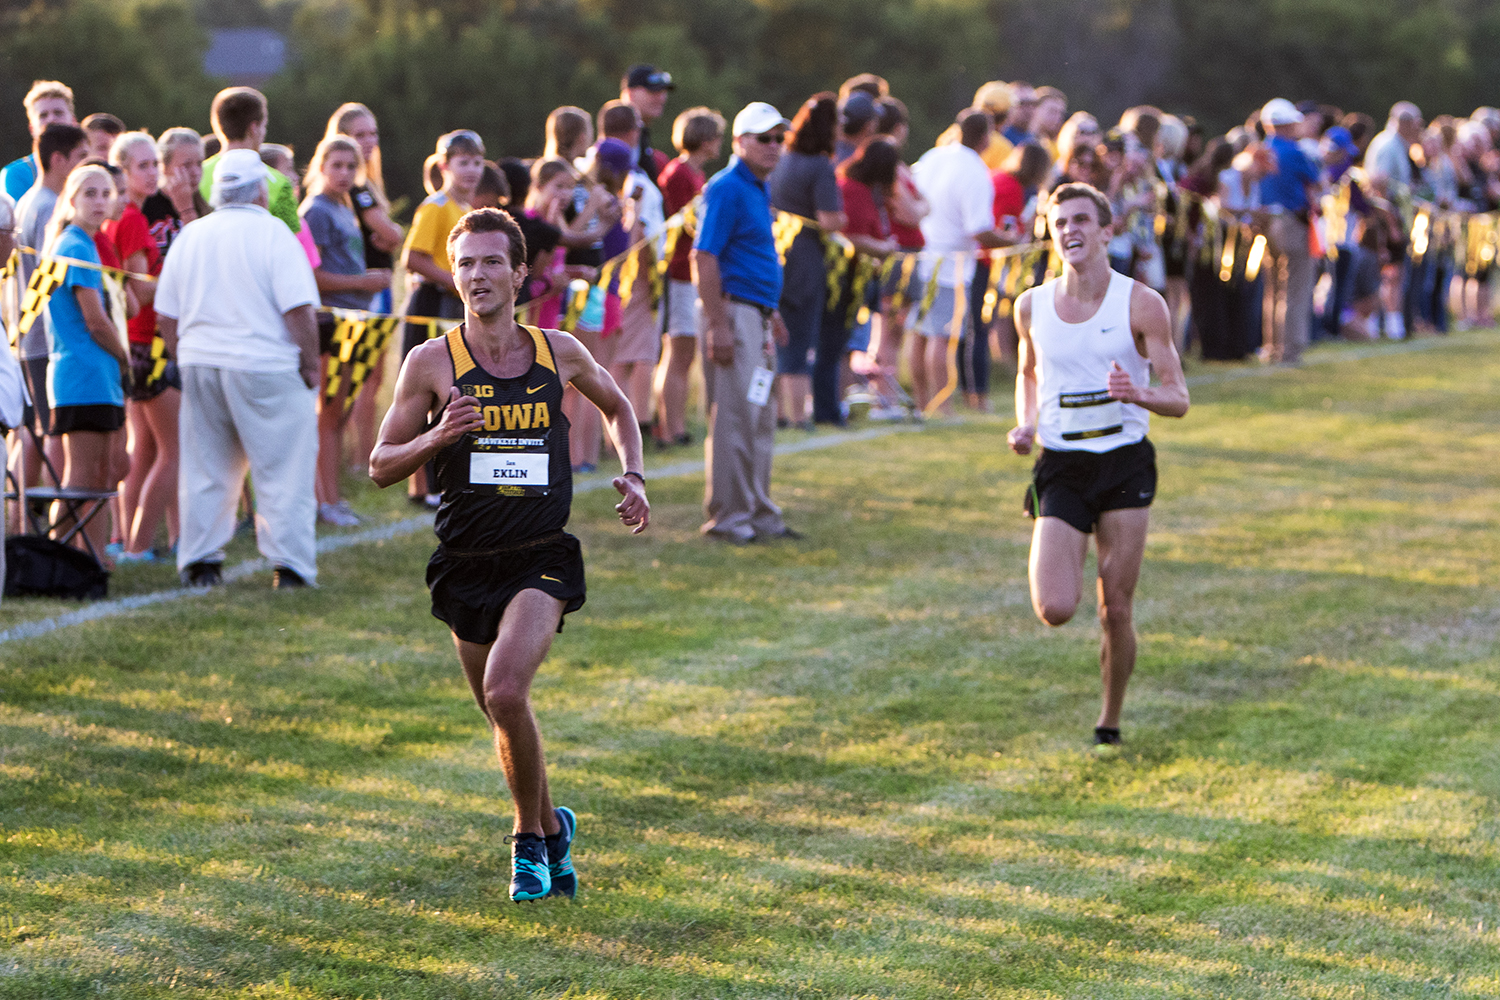 Ian Eklin kicks down a competitor at the finish line at the Hawkeye Invitational Cross Country meet on Friday, Sept. 1, 2017.